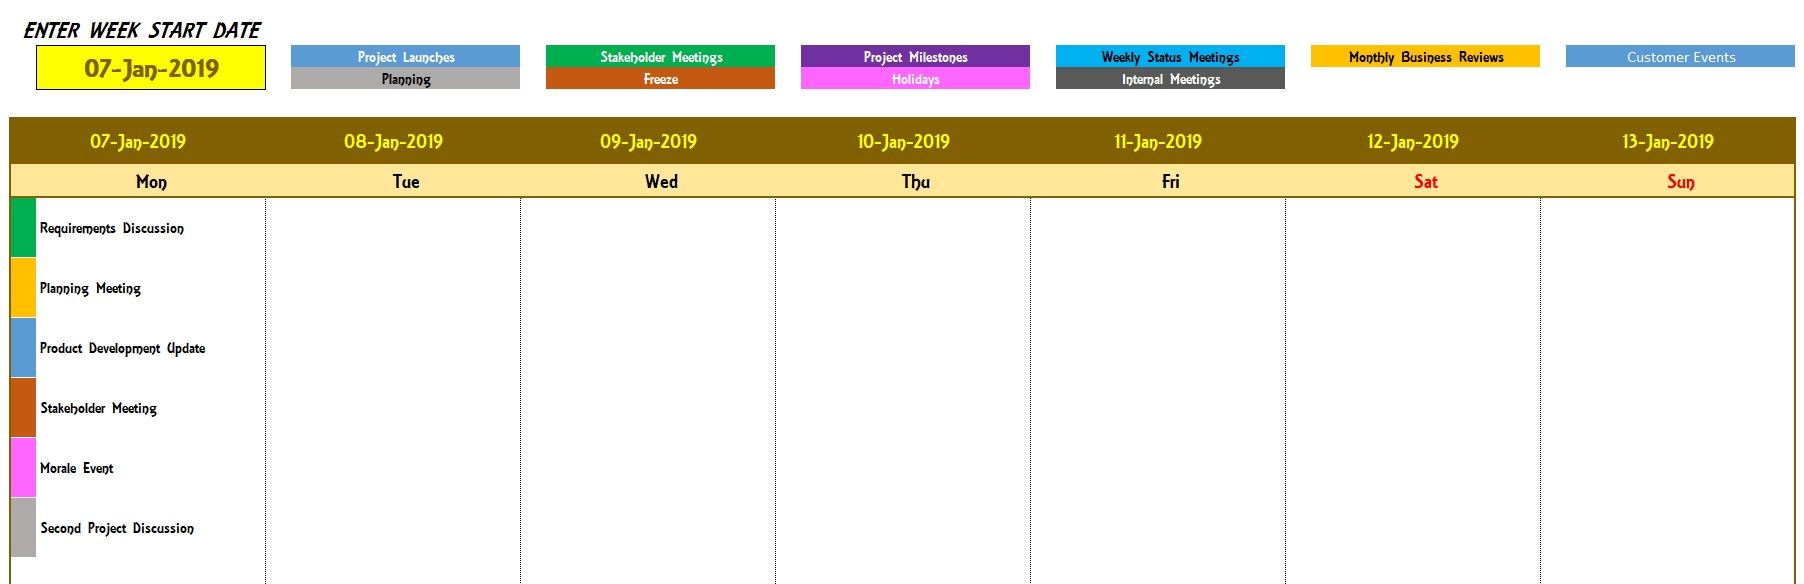 Excel Calendar Template - Excel Calendar 2019, 2020 Or Any Year pertaining to Template For Montlhy Calendar Of Events